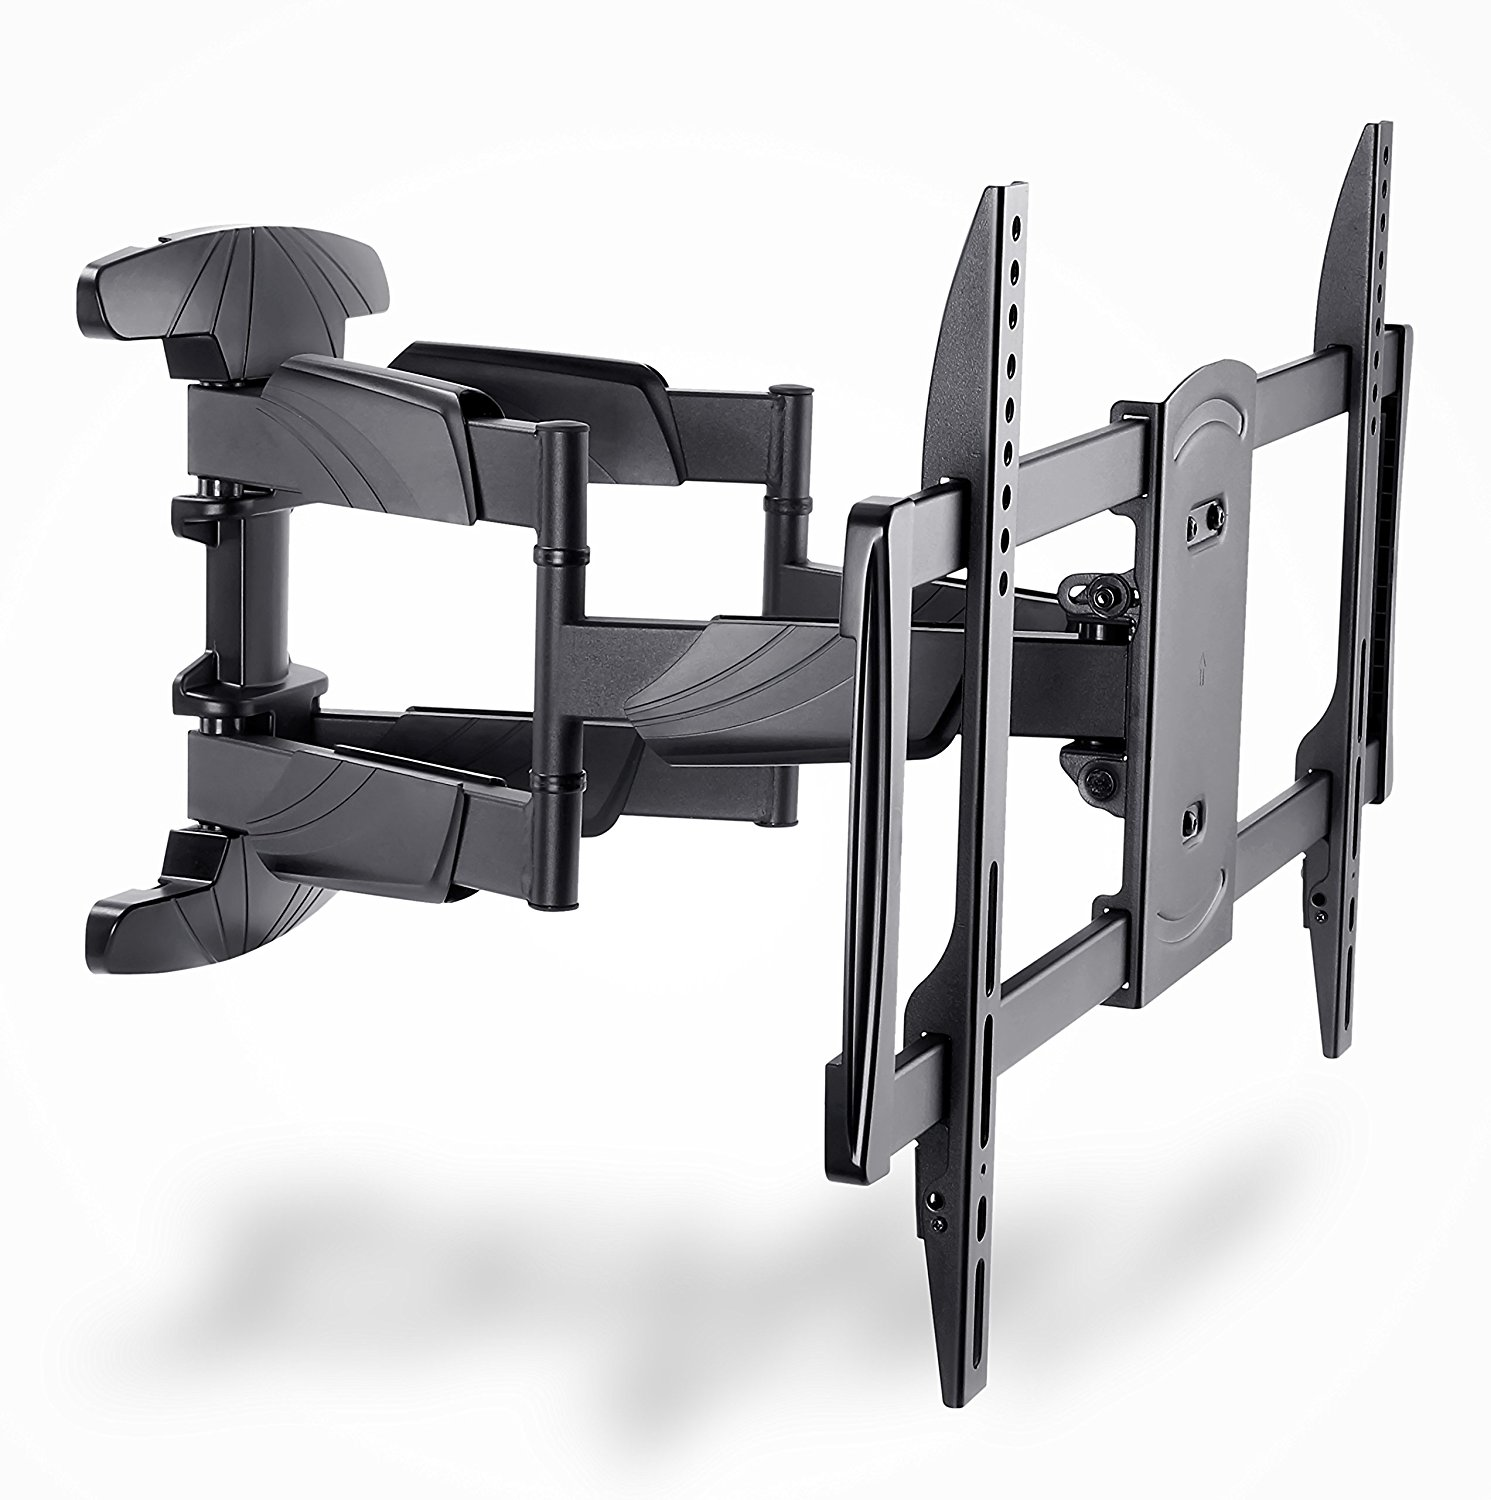 IBRA Ultra Slim Tilt Swivel TV Wall Mount for 32 - 65 inch LED, LCD Plasma & Curved Screens